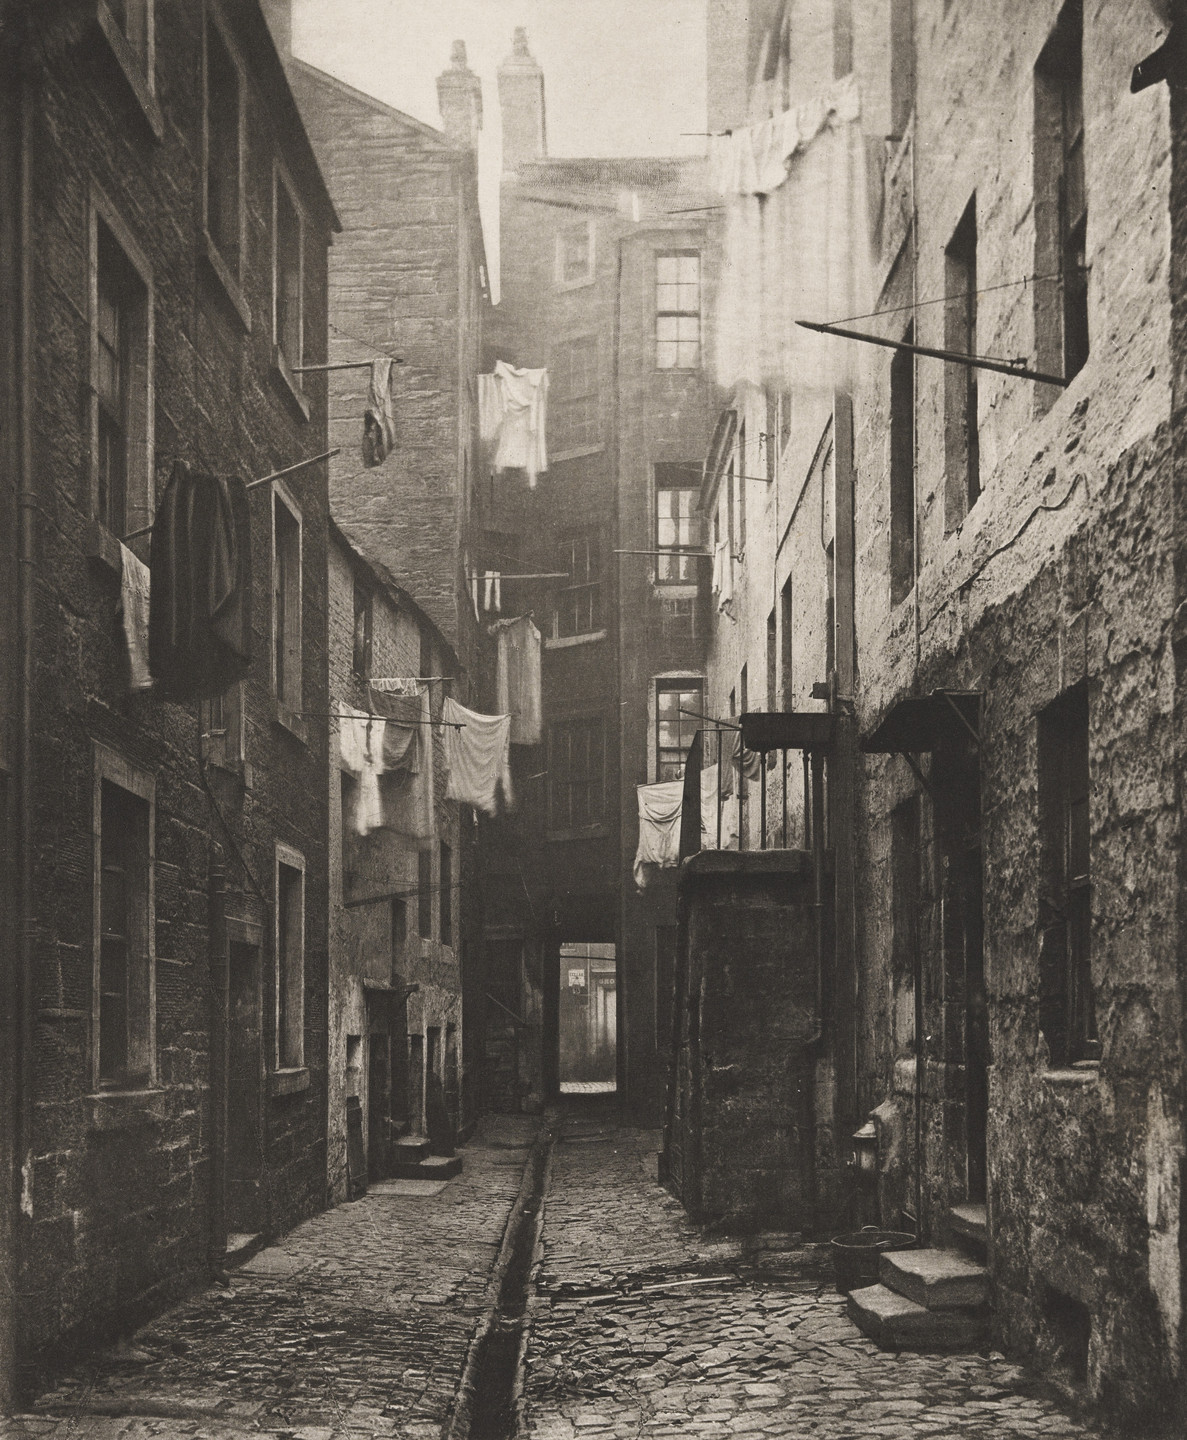 Thomas Annan. Close No. 75 High Street. 1868